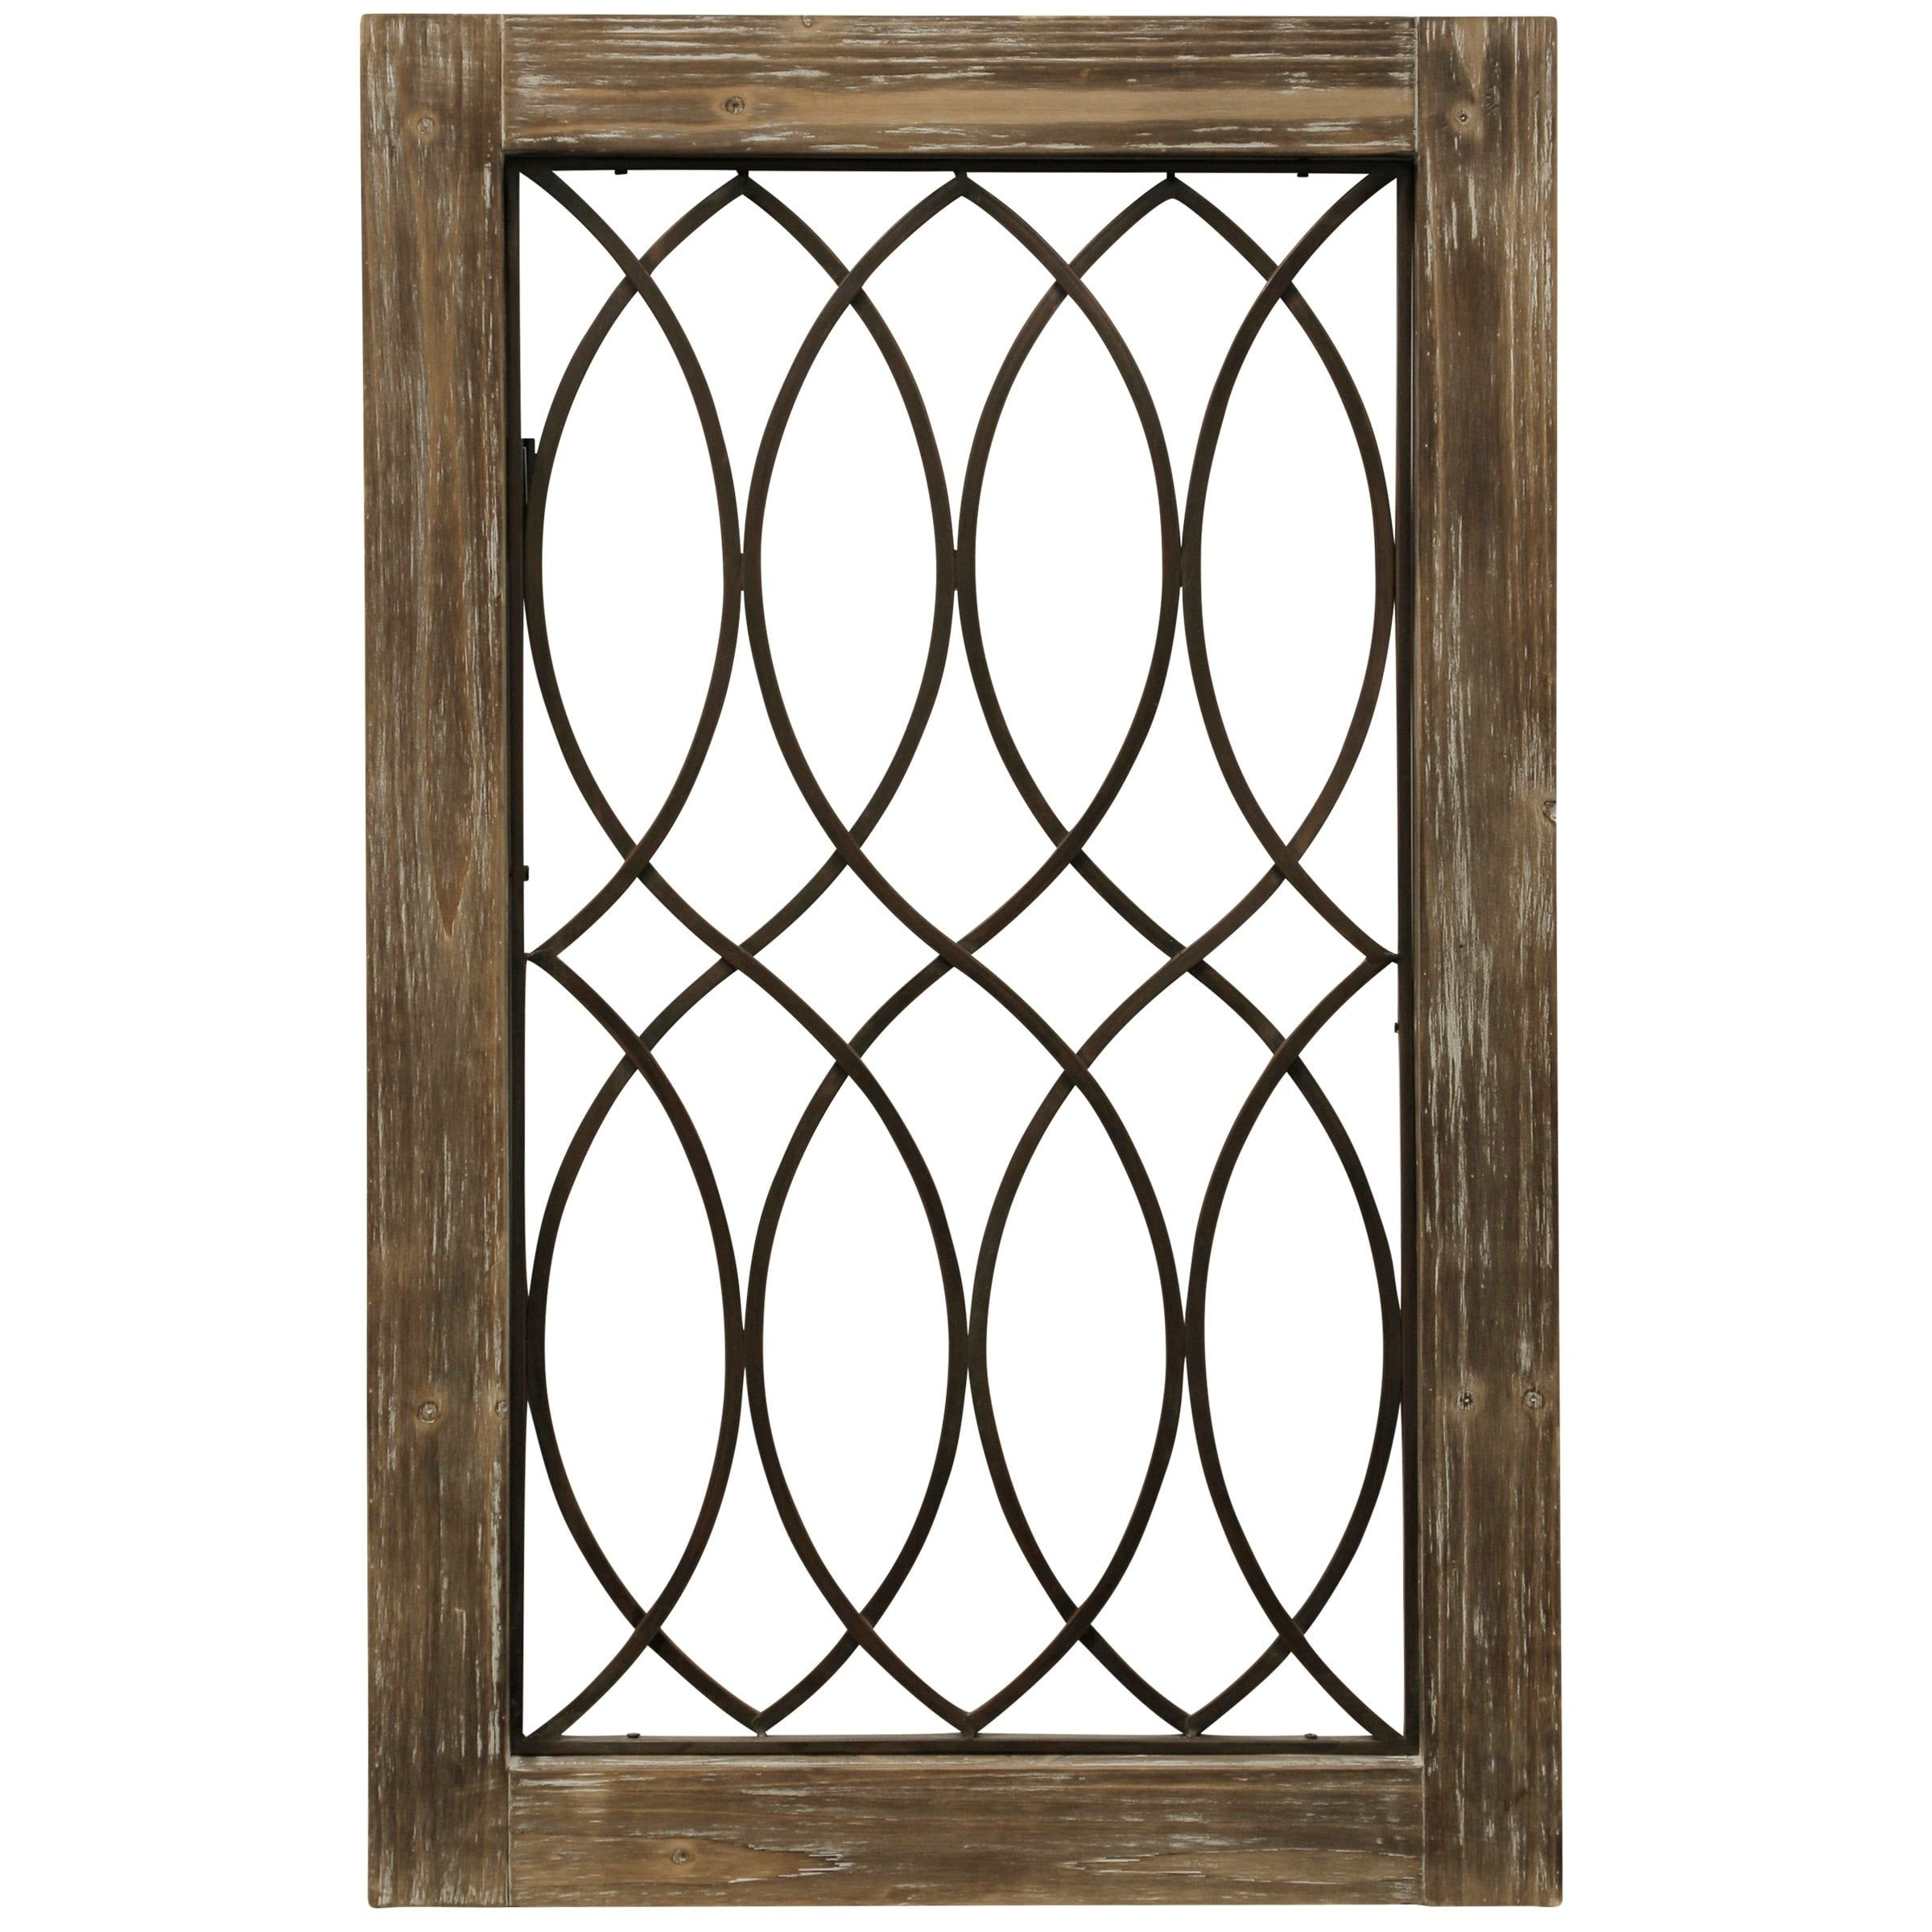 Woodland Imports D�cor Rustic Intricated Wall D�cor: Wood-Framed Metal Grate II Wall Décor, Beige(MDF)